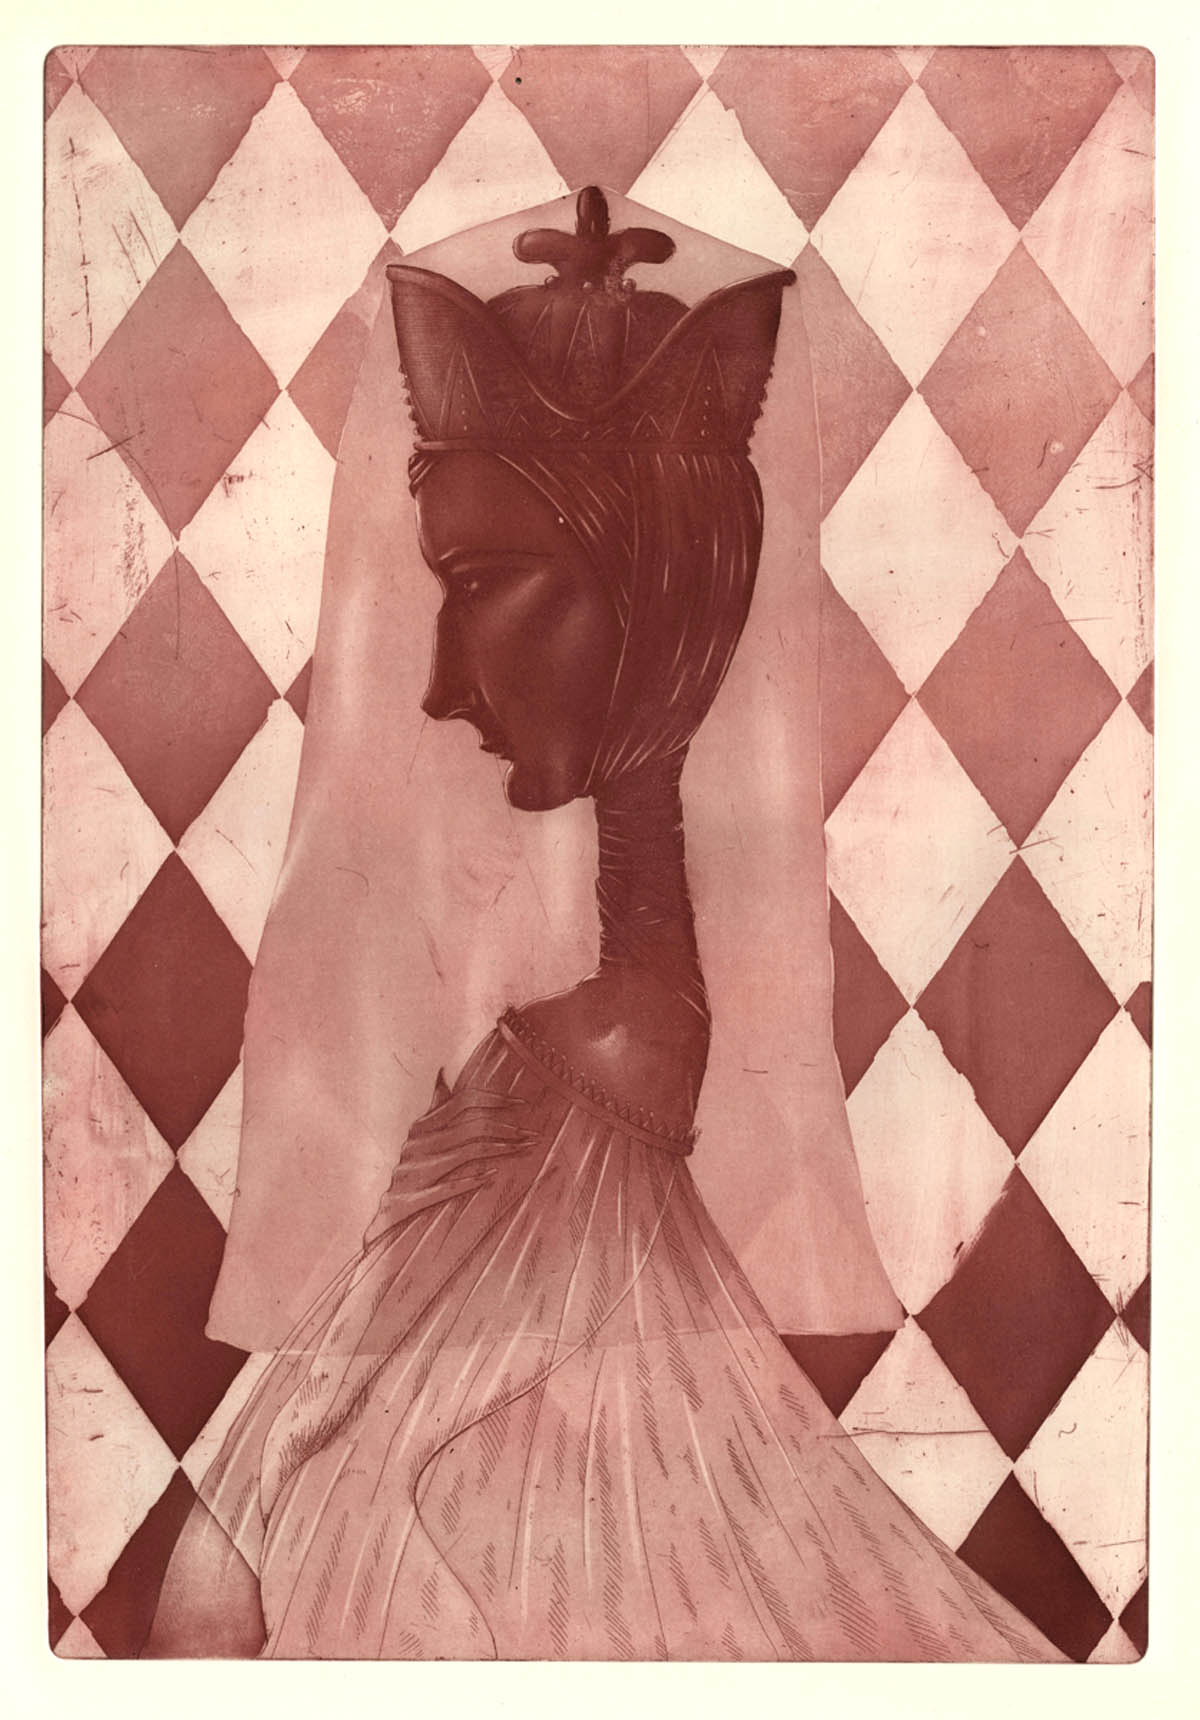 Michael Ezzell Checkmate etching 13 x 19 inches MEZ 004G.jpg